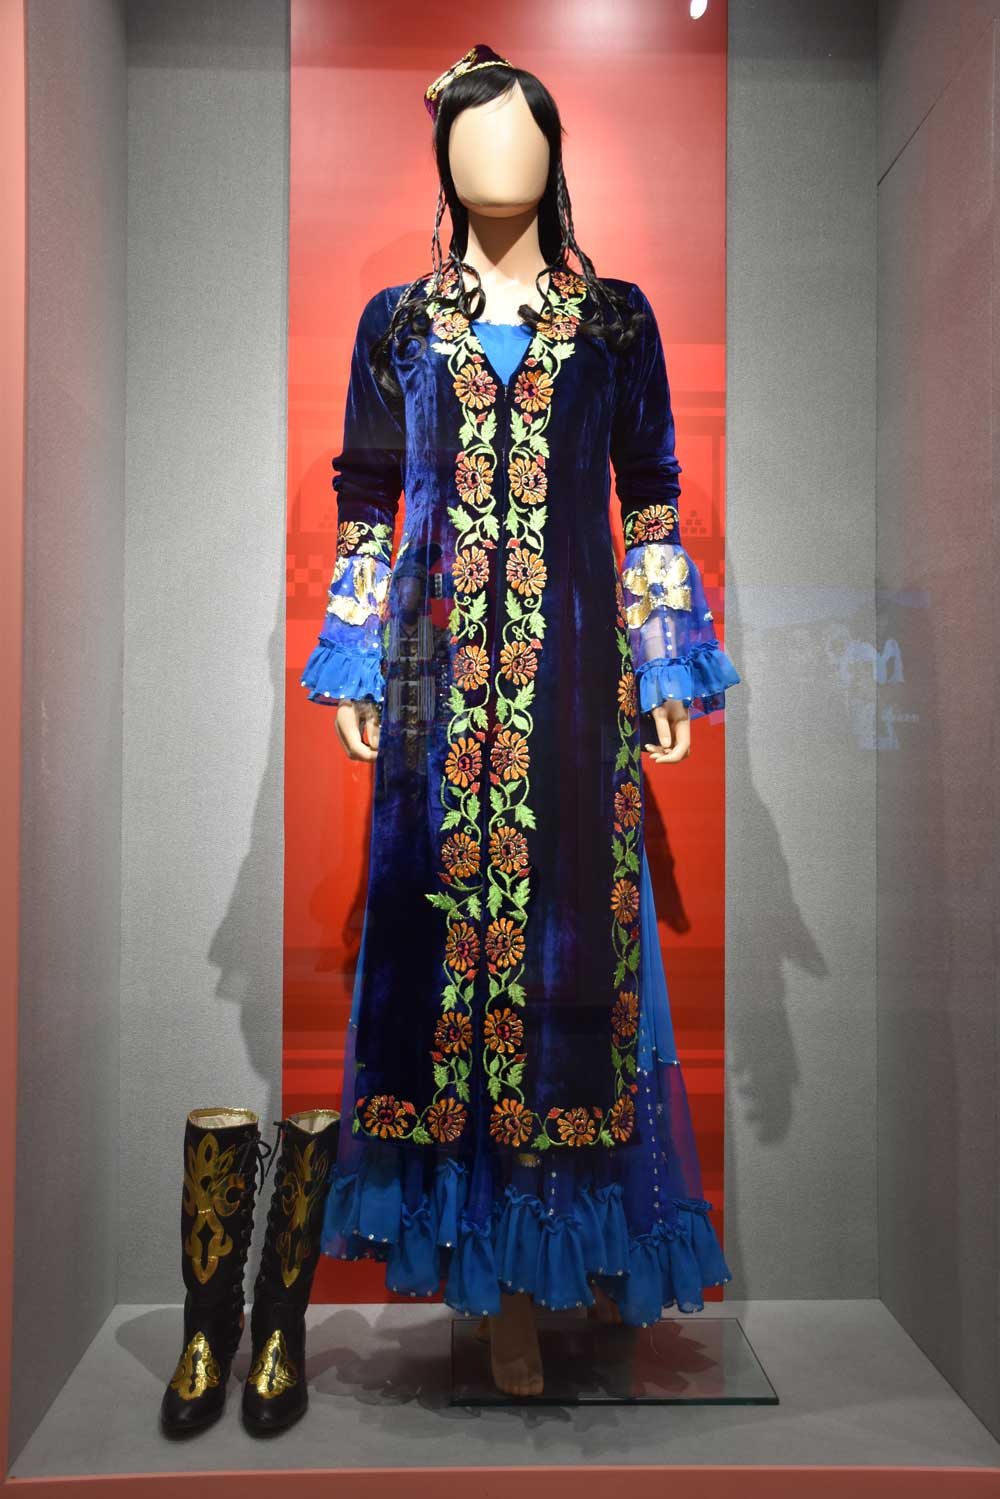 The Sculpture Park of Chinese Ethnics minority dress